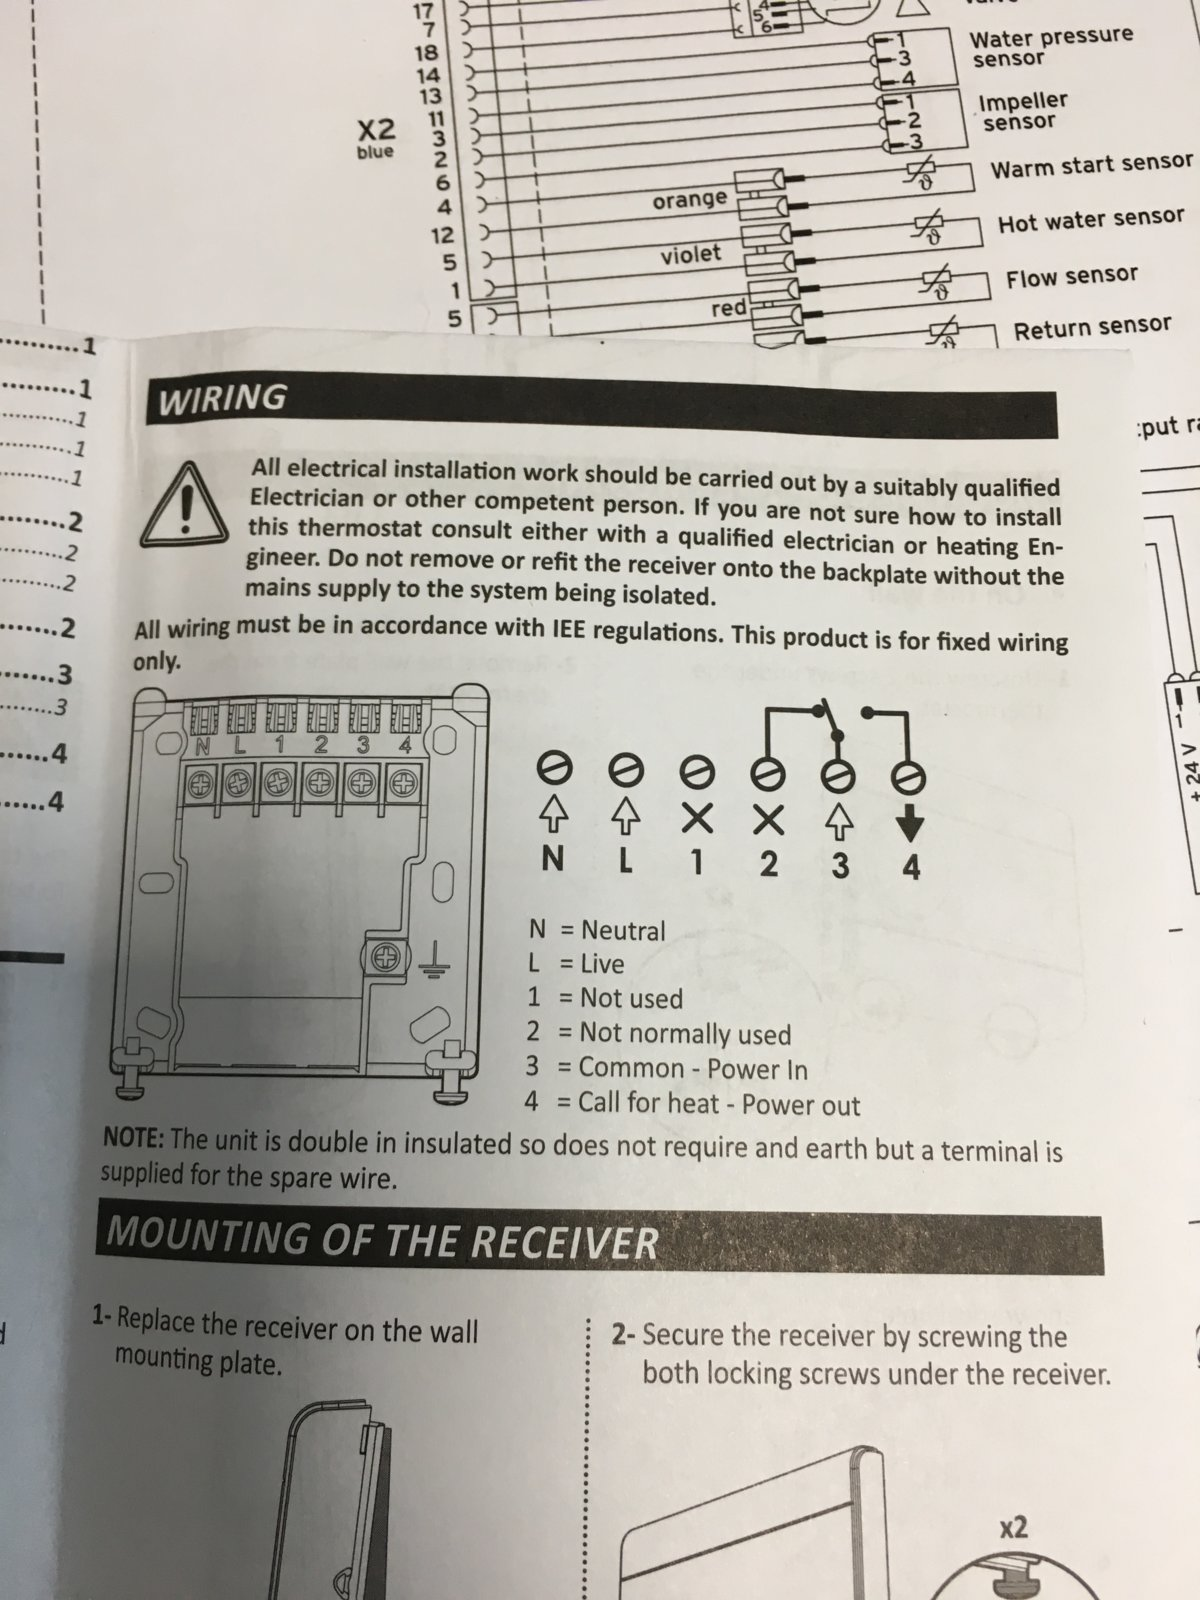 Thermostat Wiring Diagram X1 Manual | Wiring Liry on